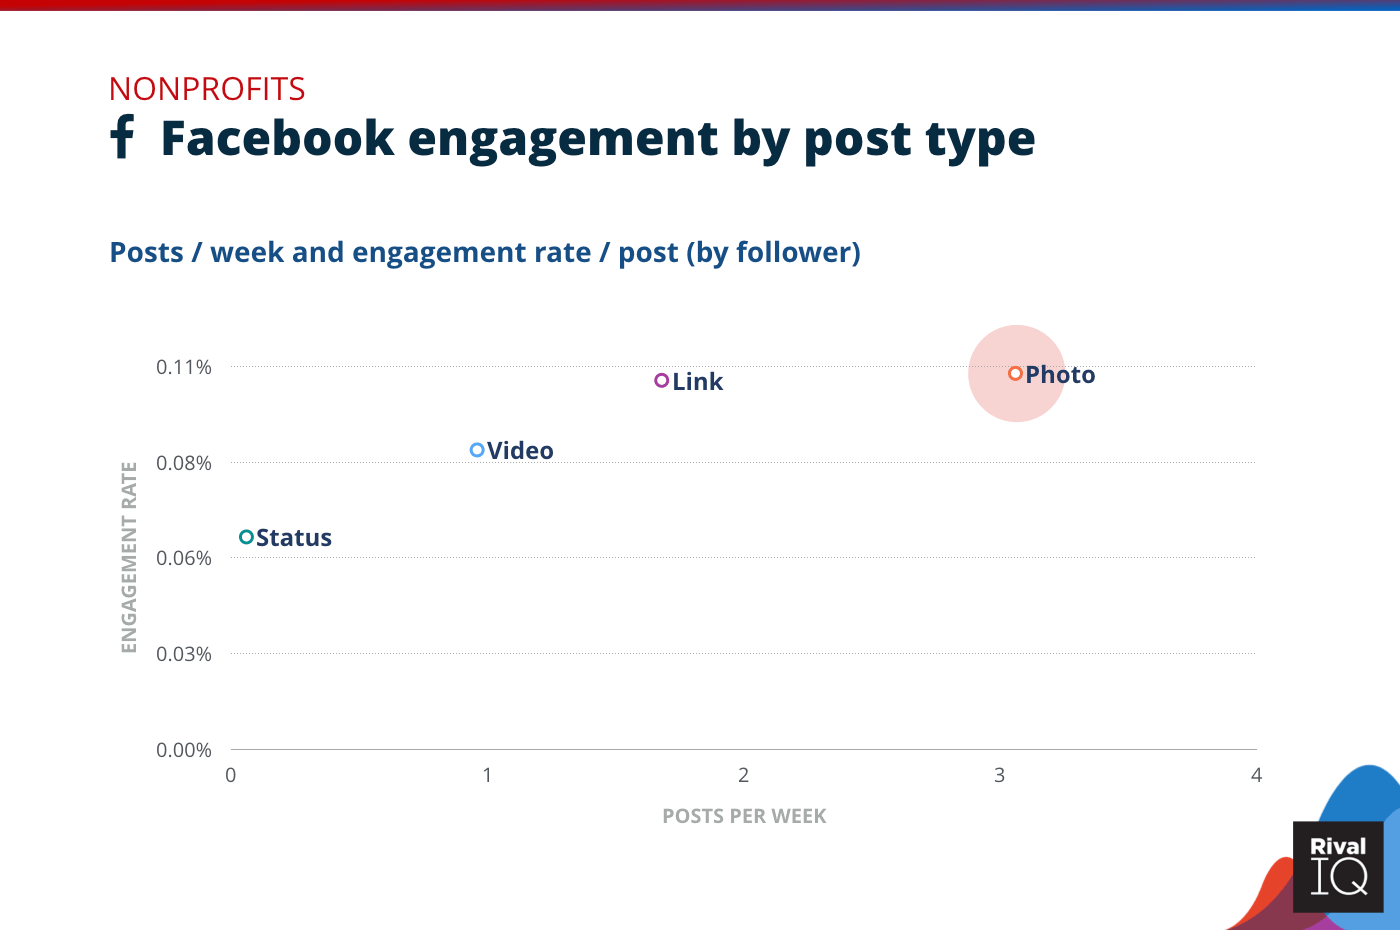 Chart of Facebook posts per week and engagement rate by post type, Nonprofit